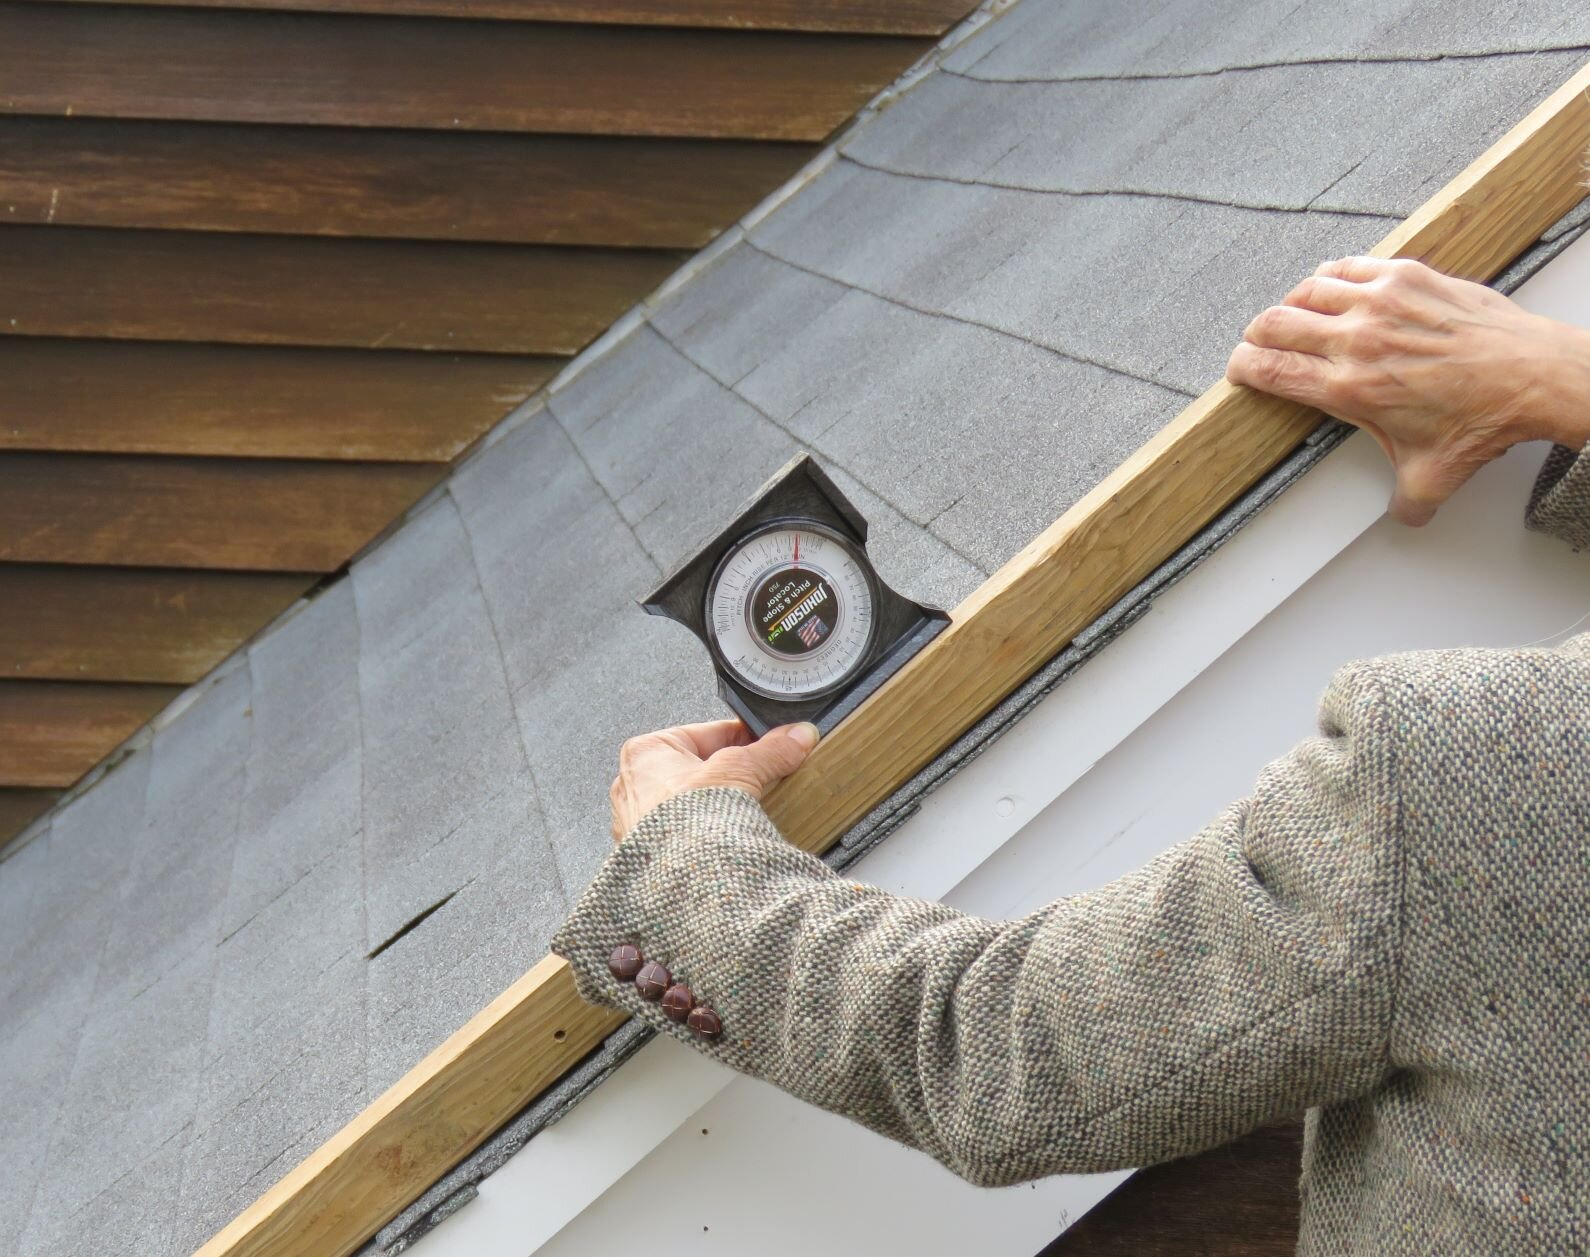 An accurate measurement of the slope is one of the most important pieces of information to have about a roof.